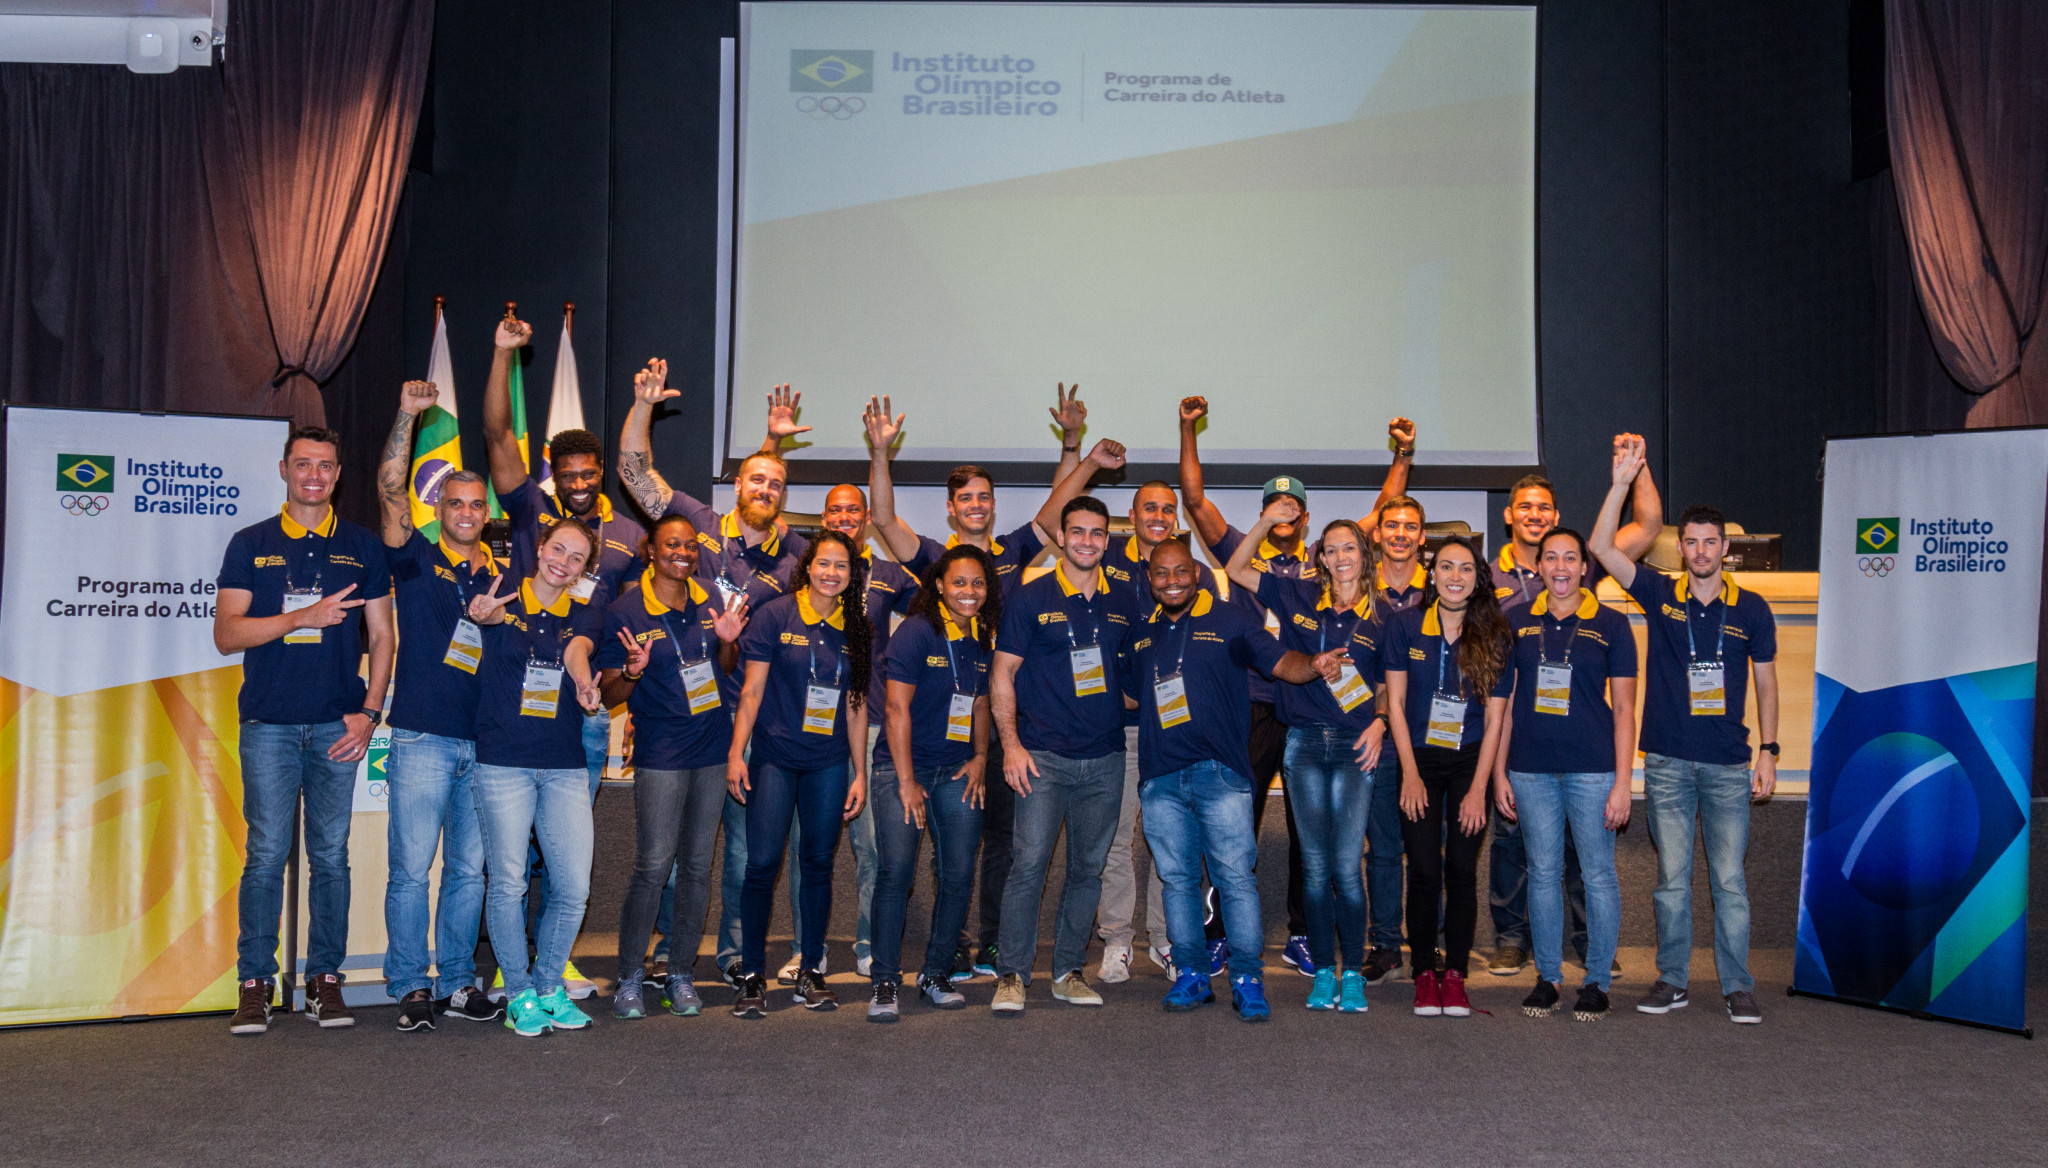 Brazilian Olympic Committee launch sixth edition of Athlete Career Programme